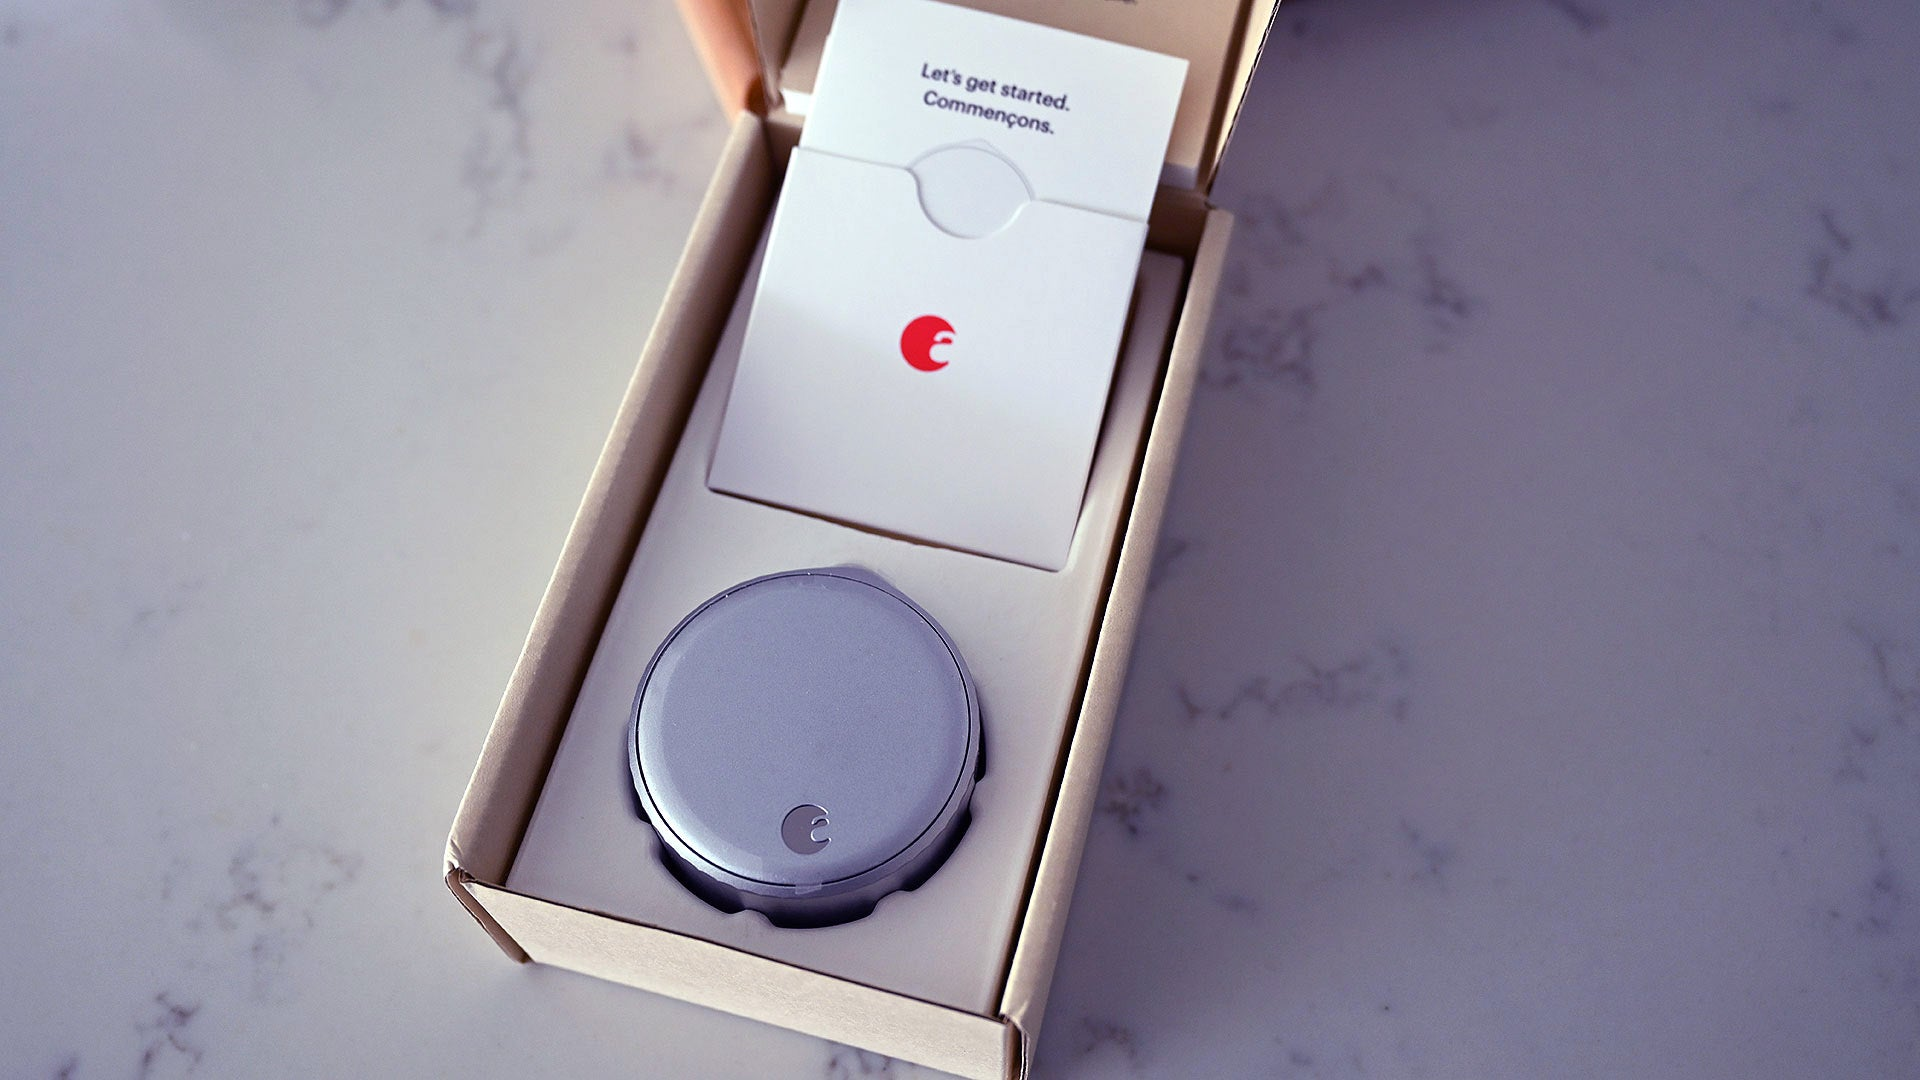 smart home gadgets: Smart Lock